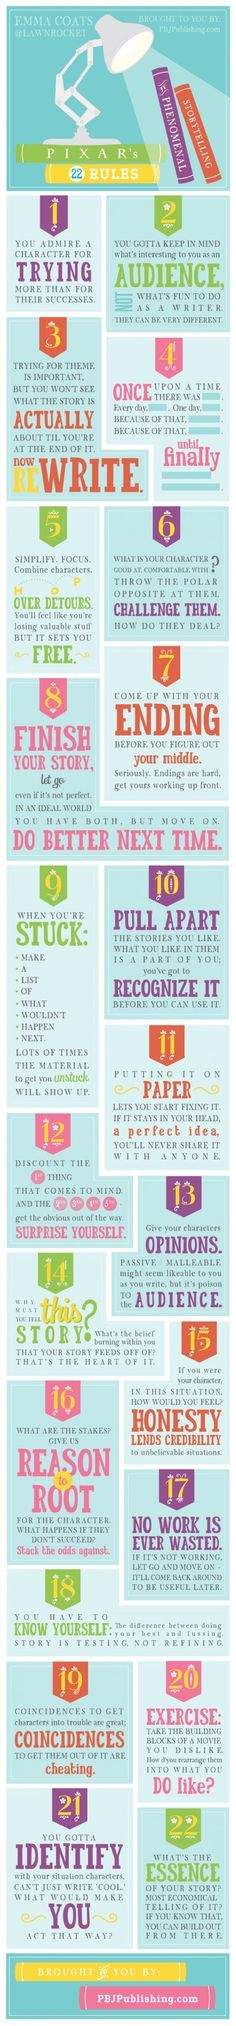 Pixar's 22 Rules to Phenomenal Storytelling. Great for creating writing prompts to help students develop their stories.